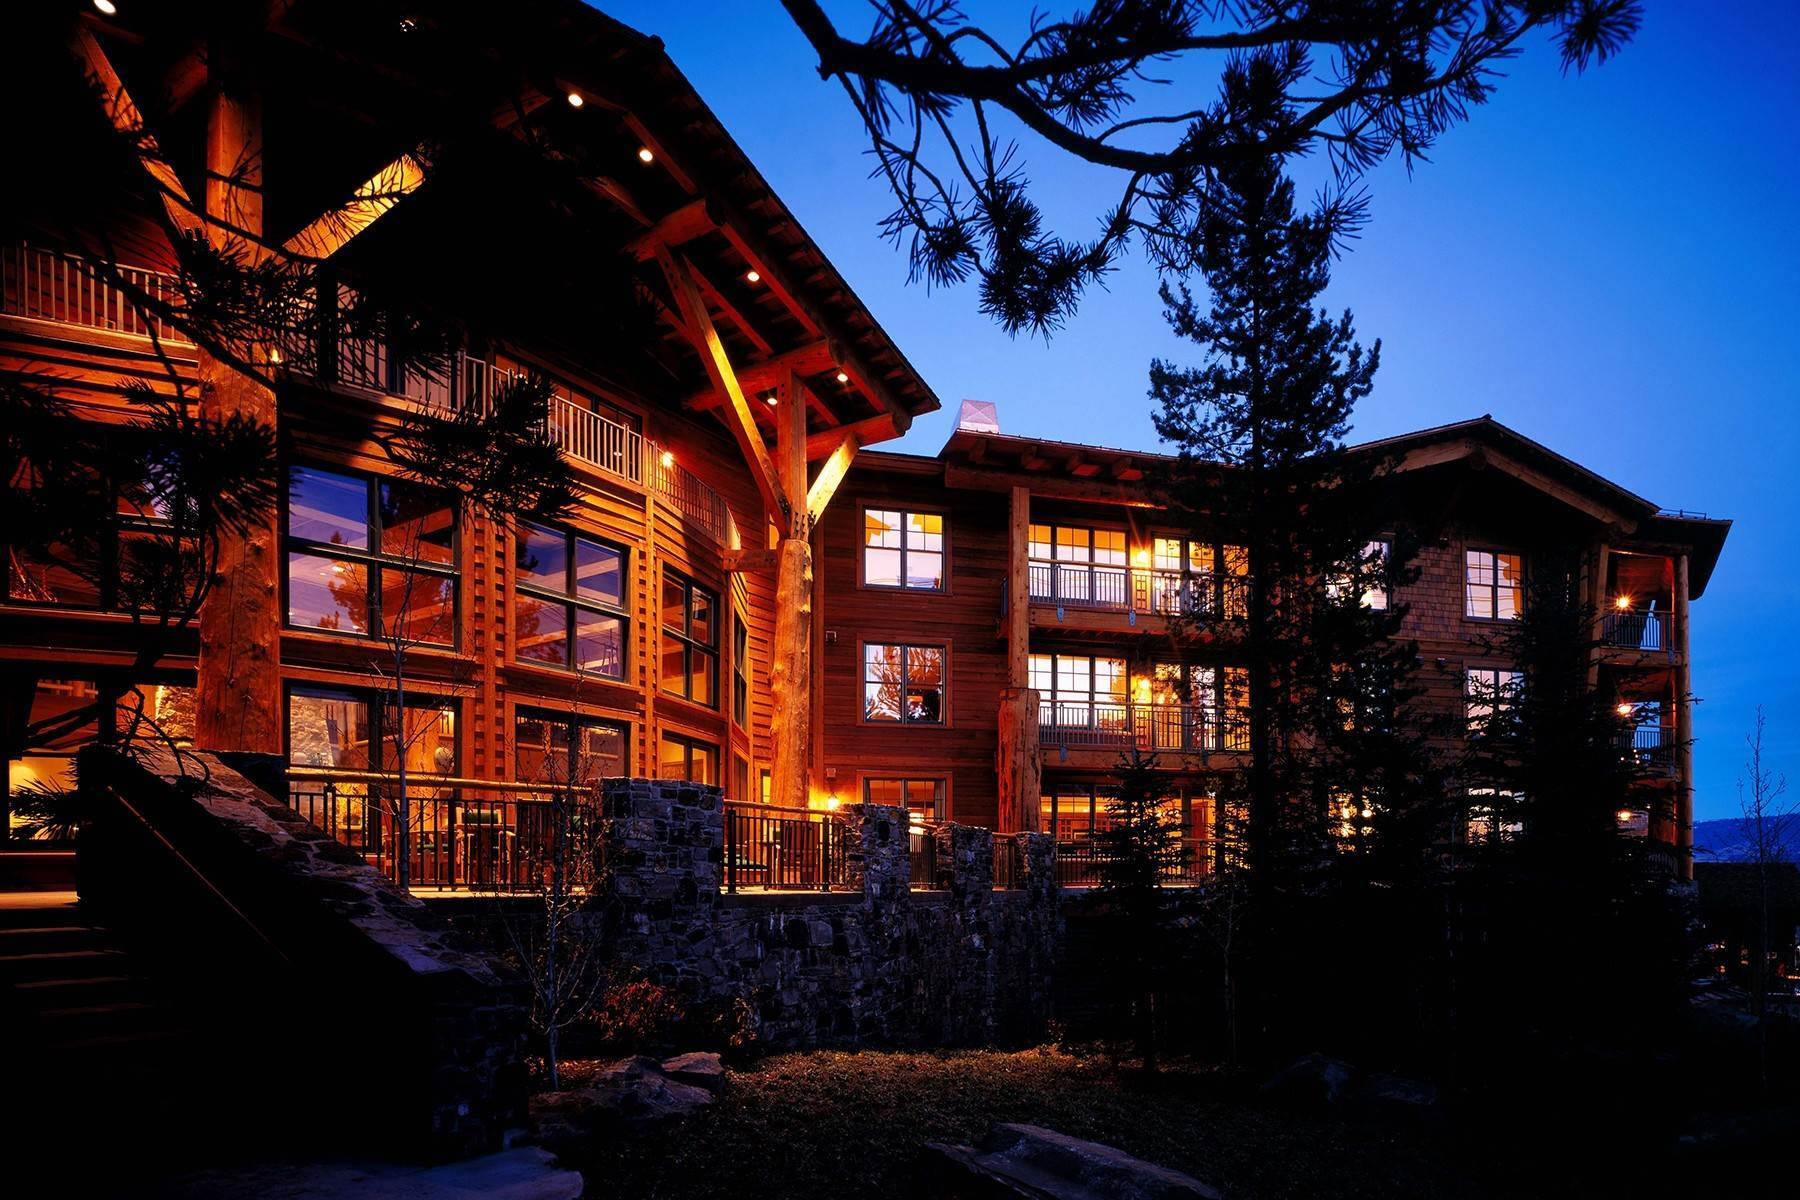 fractional ownership prop for Sale at 3340 W Cody Ln, #104 Teton Village, Wyoming 83025 United States